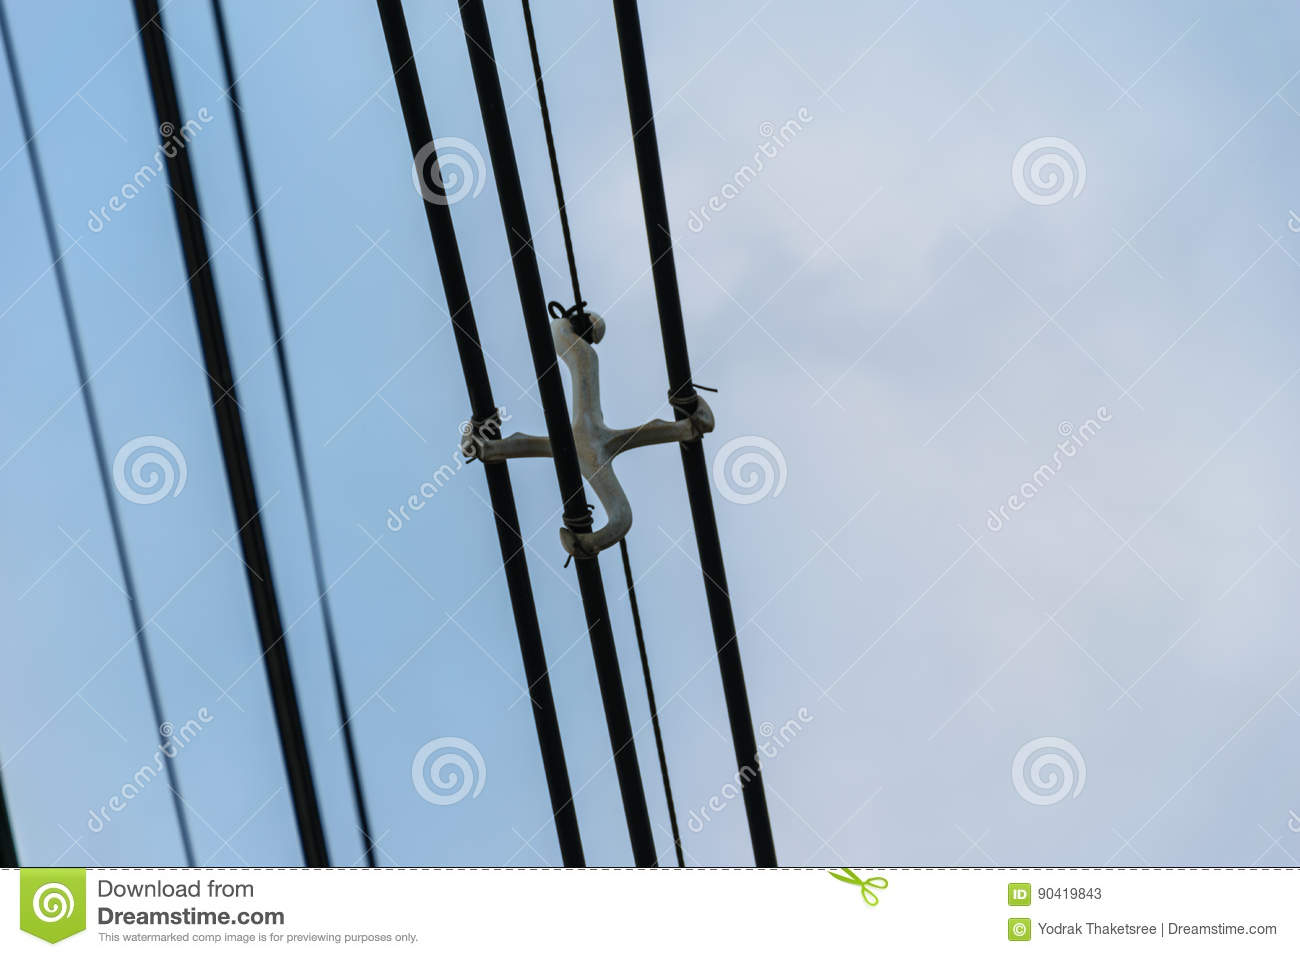 Wire cable stock image. Image of power, cable, distribution - 90419843